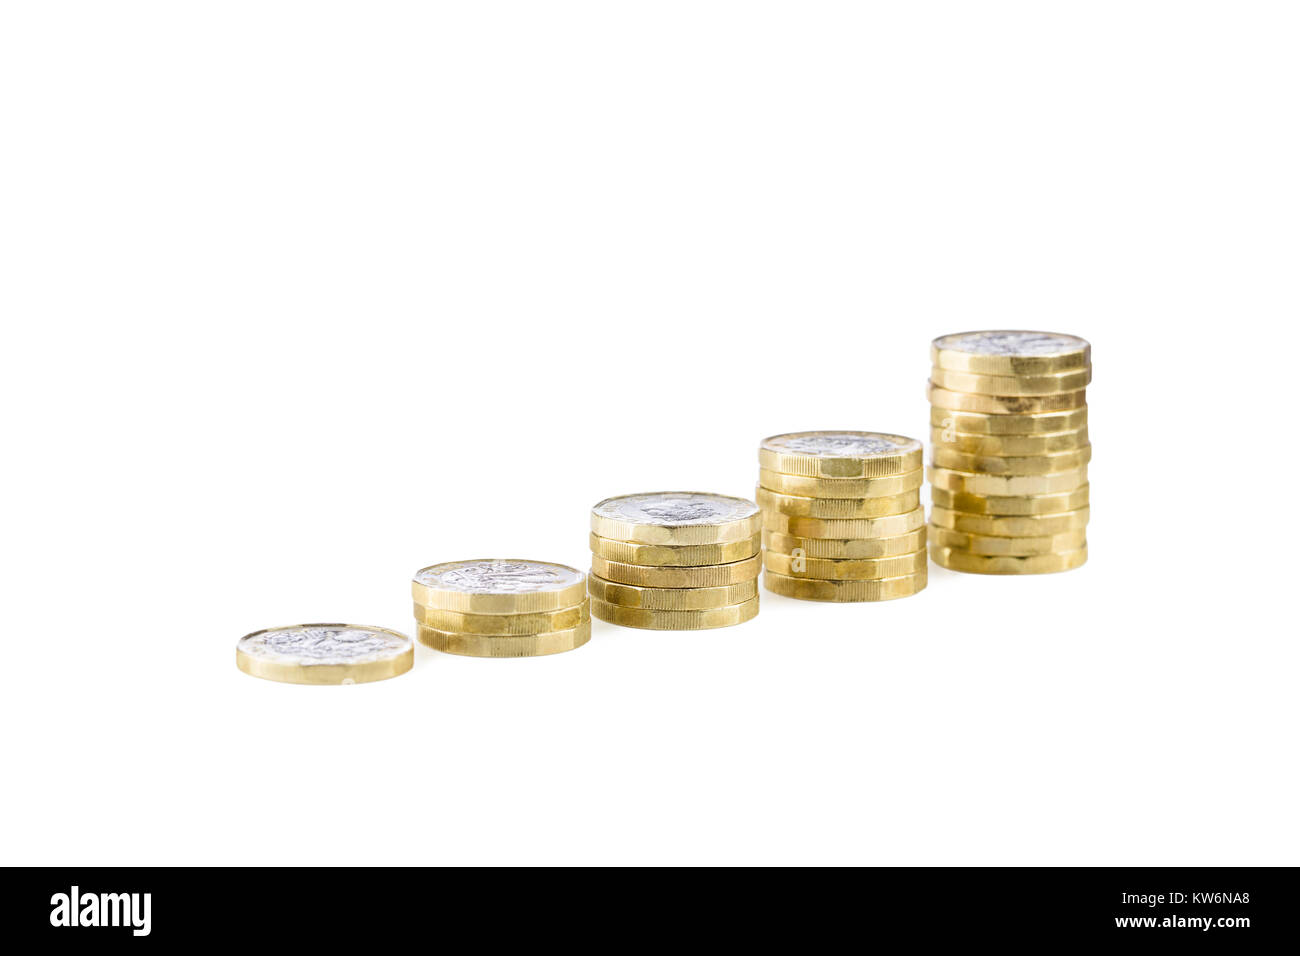 Piles of uk sterling pound coins - Stock Image